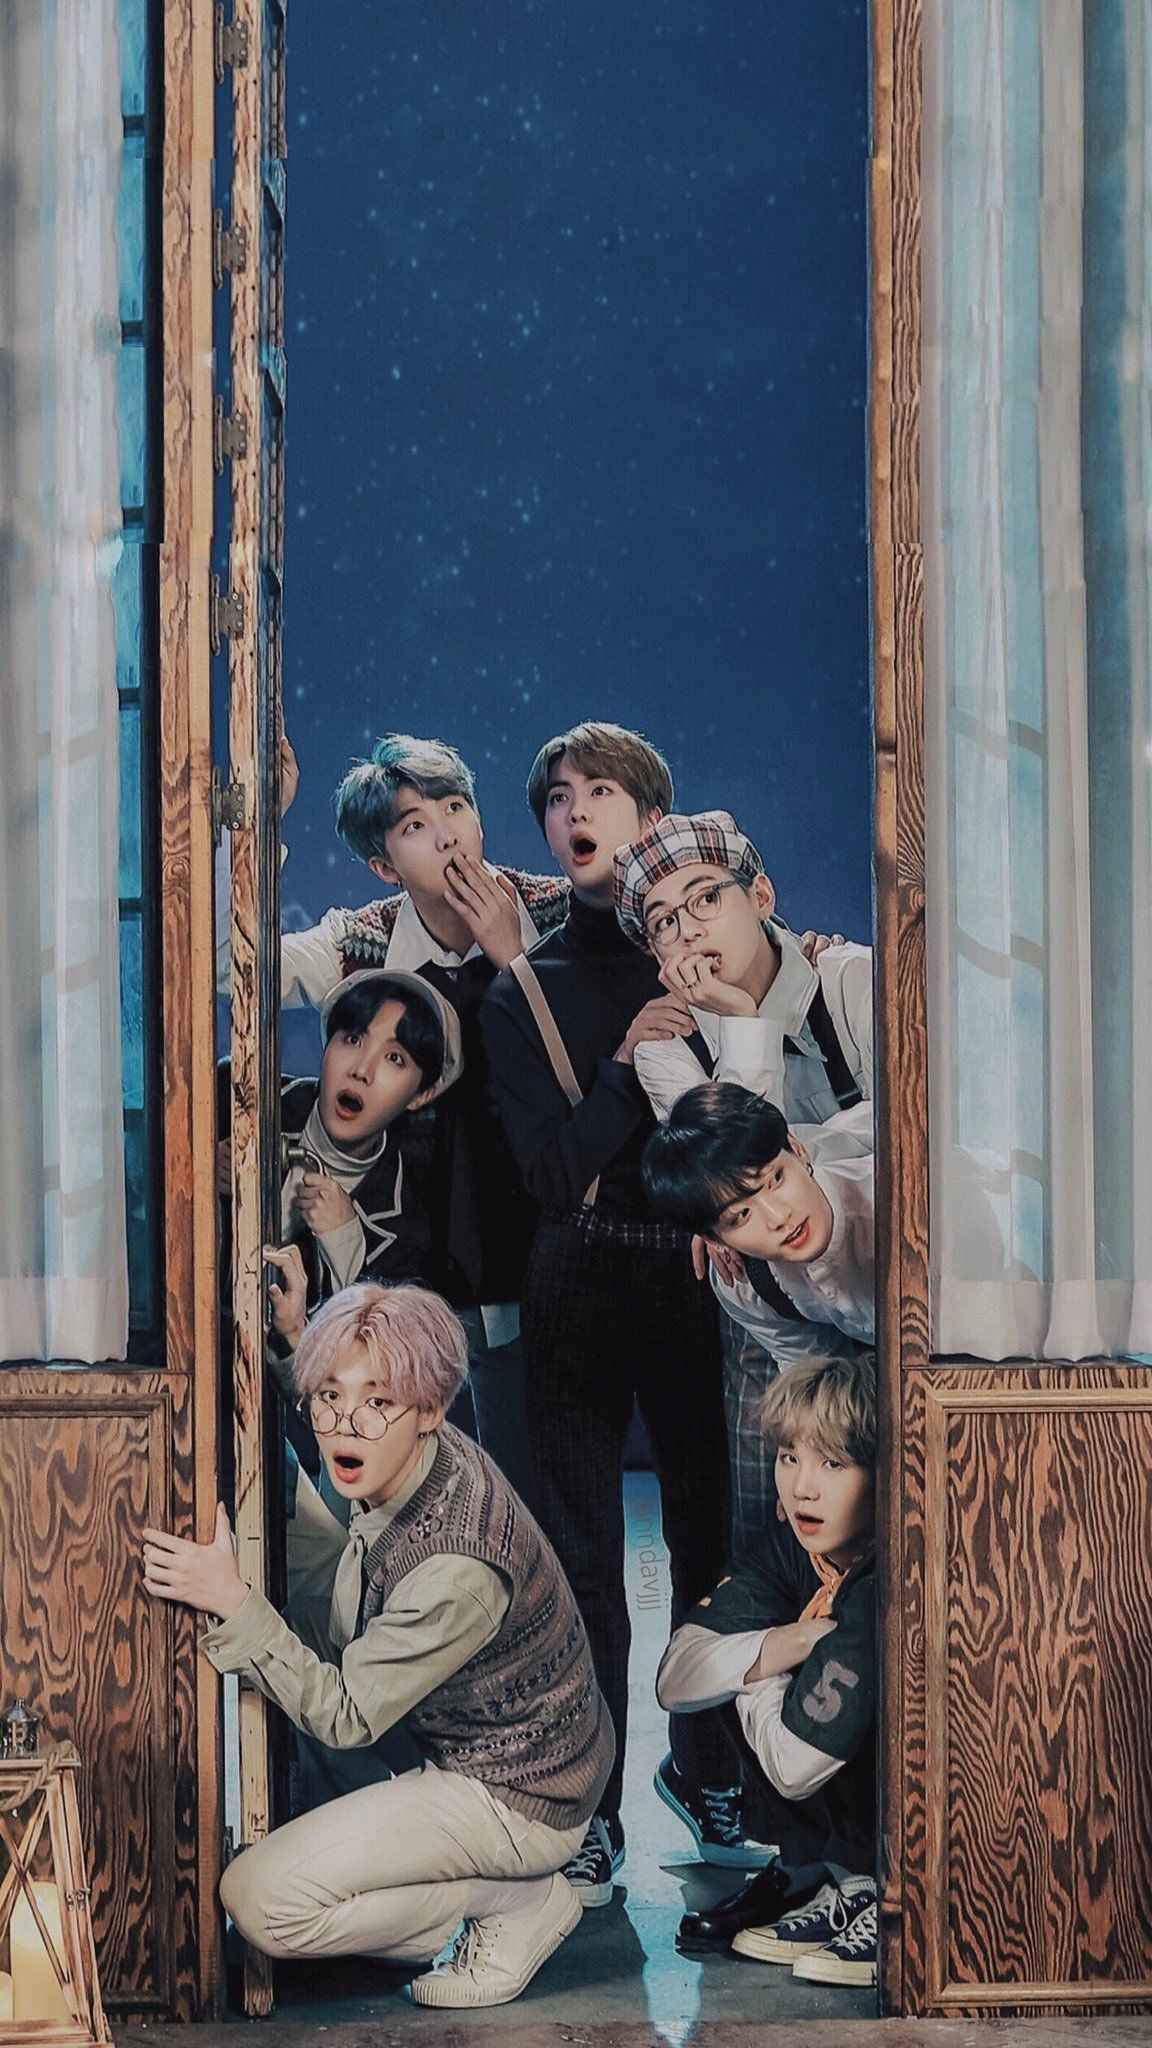 Bts Wallpaper - Bts #btswallpaperaesthetic